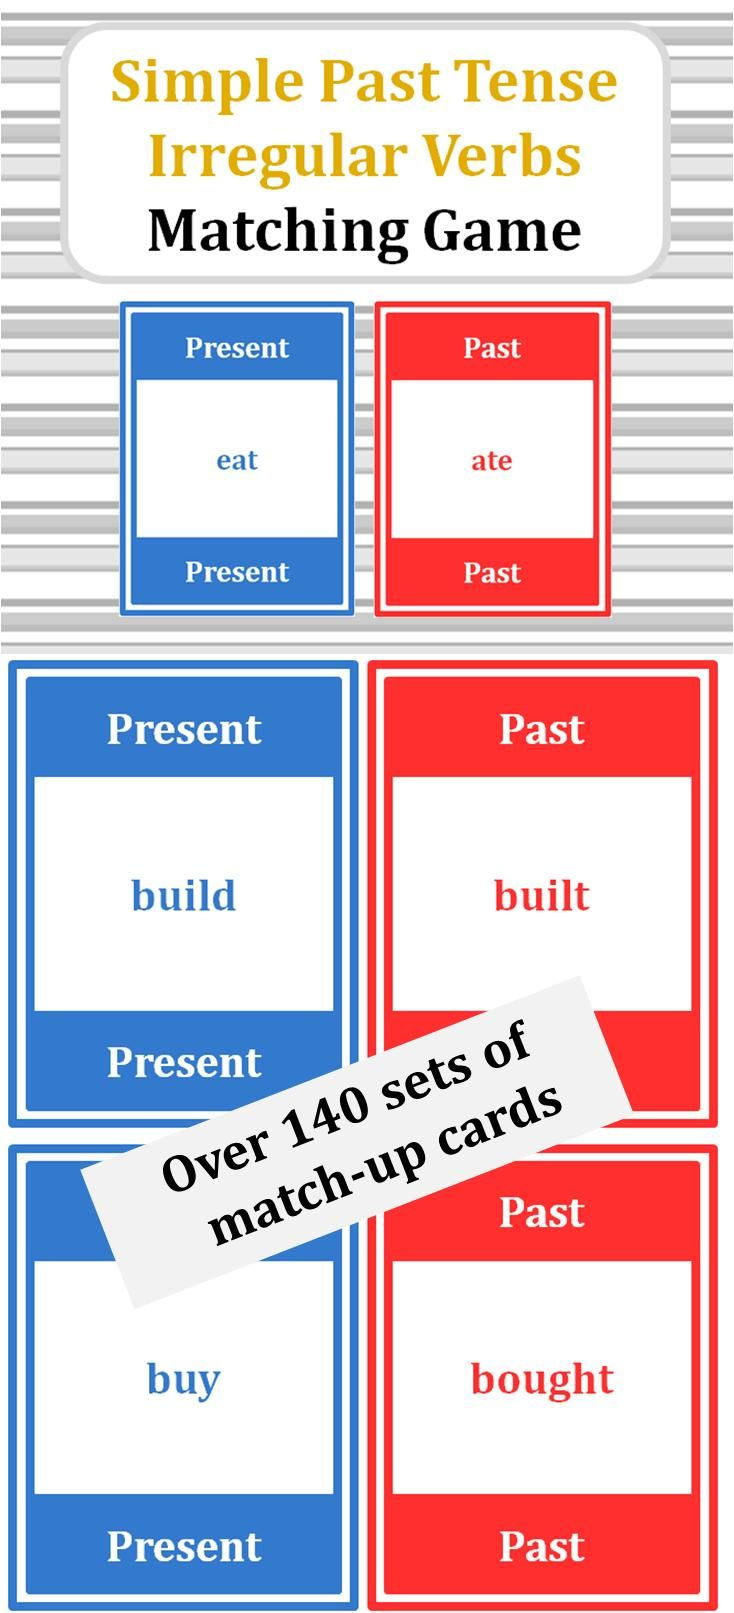 *Flash Freebie. If you like this product, please leave some feedback and follow my store for more future flash freebies:) Simple Past Tense Irregular Verbs Matching Game